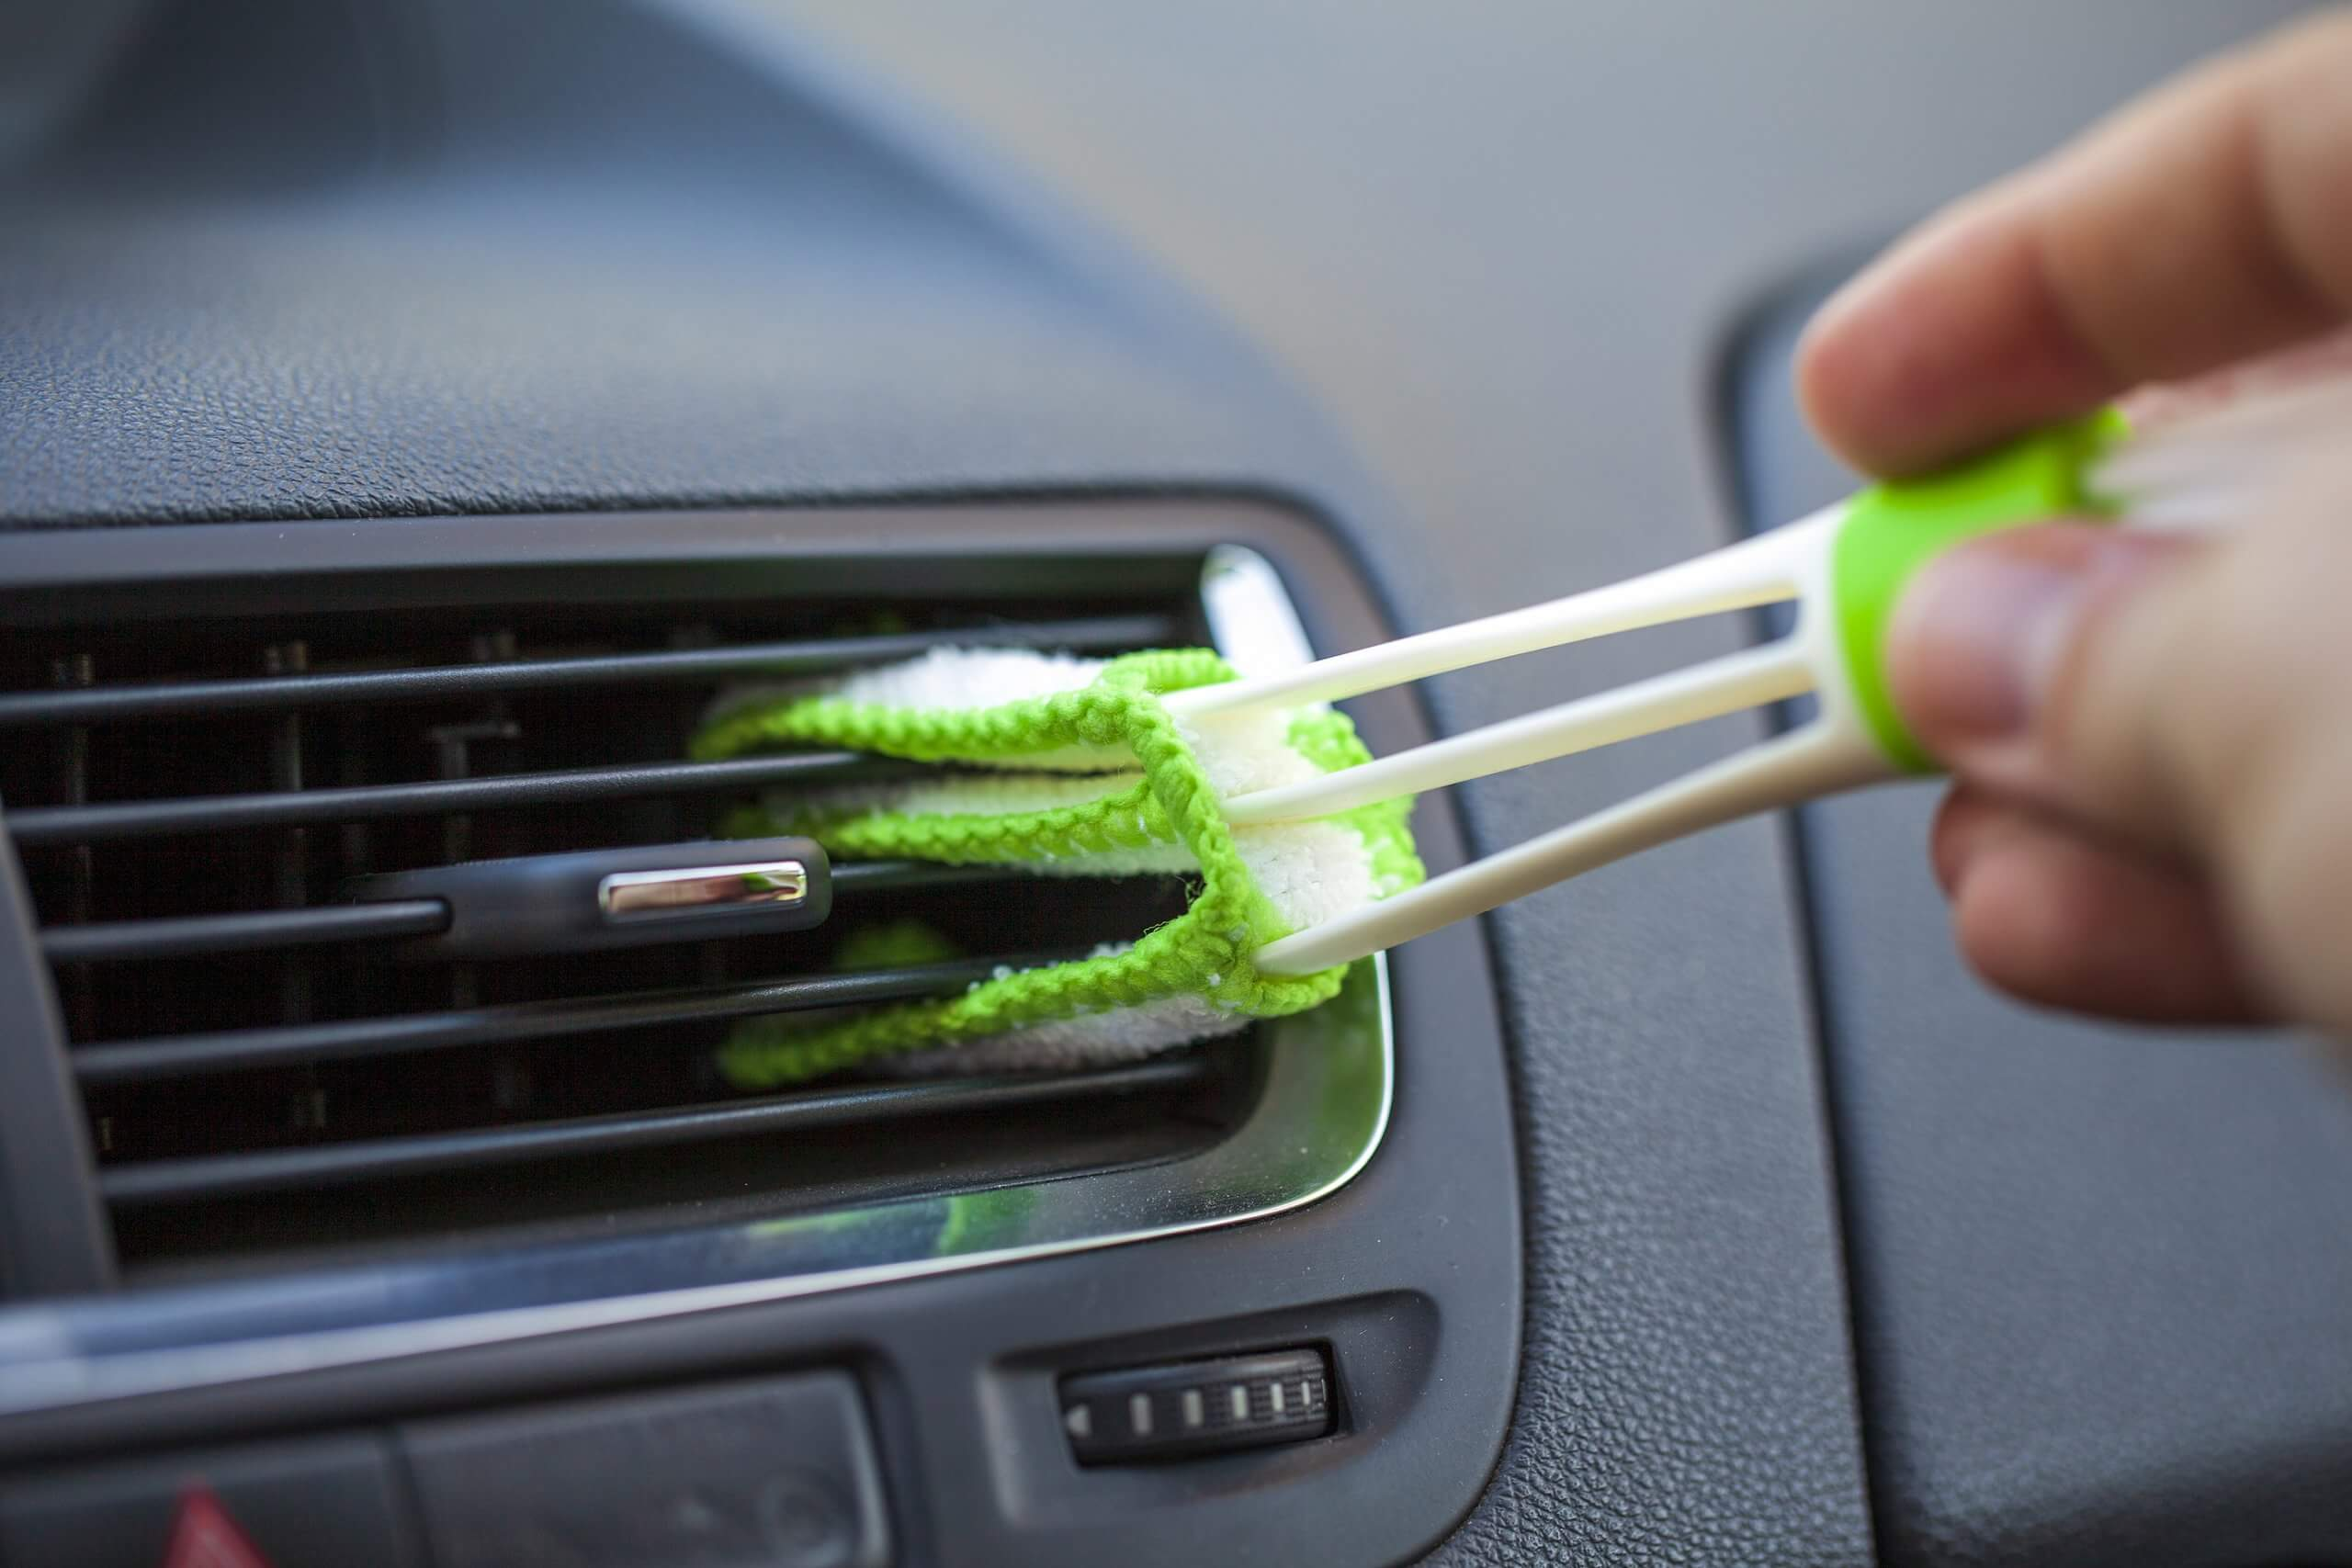 driver cleaning dust from their air conditioning vent with green brush